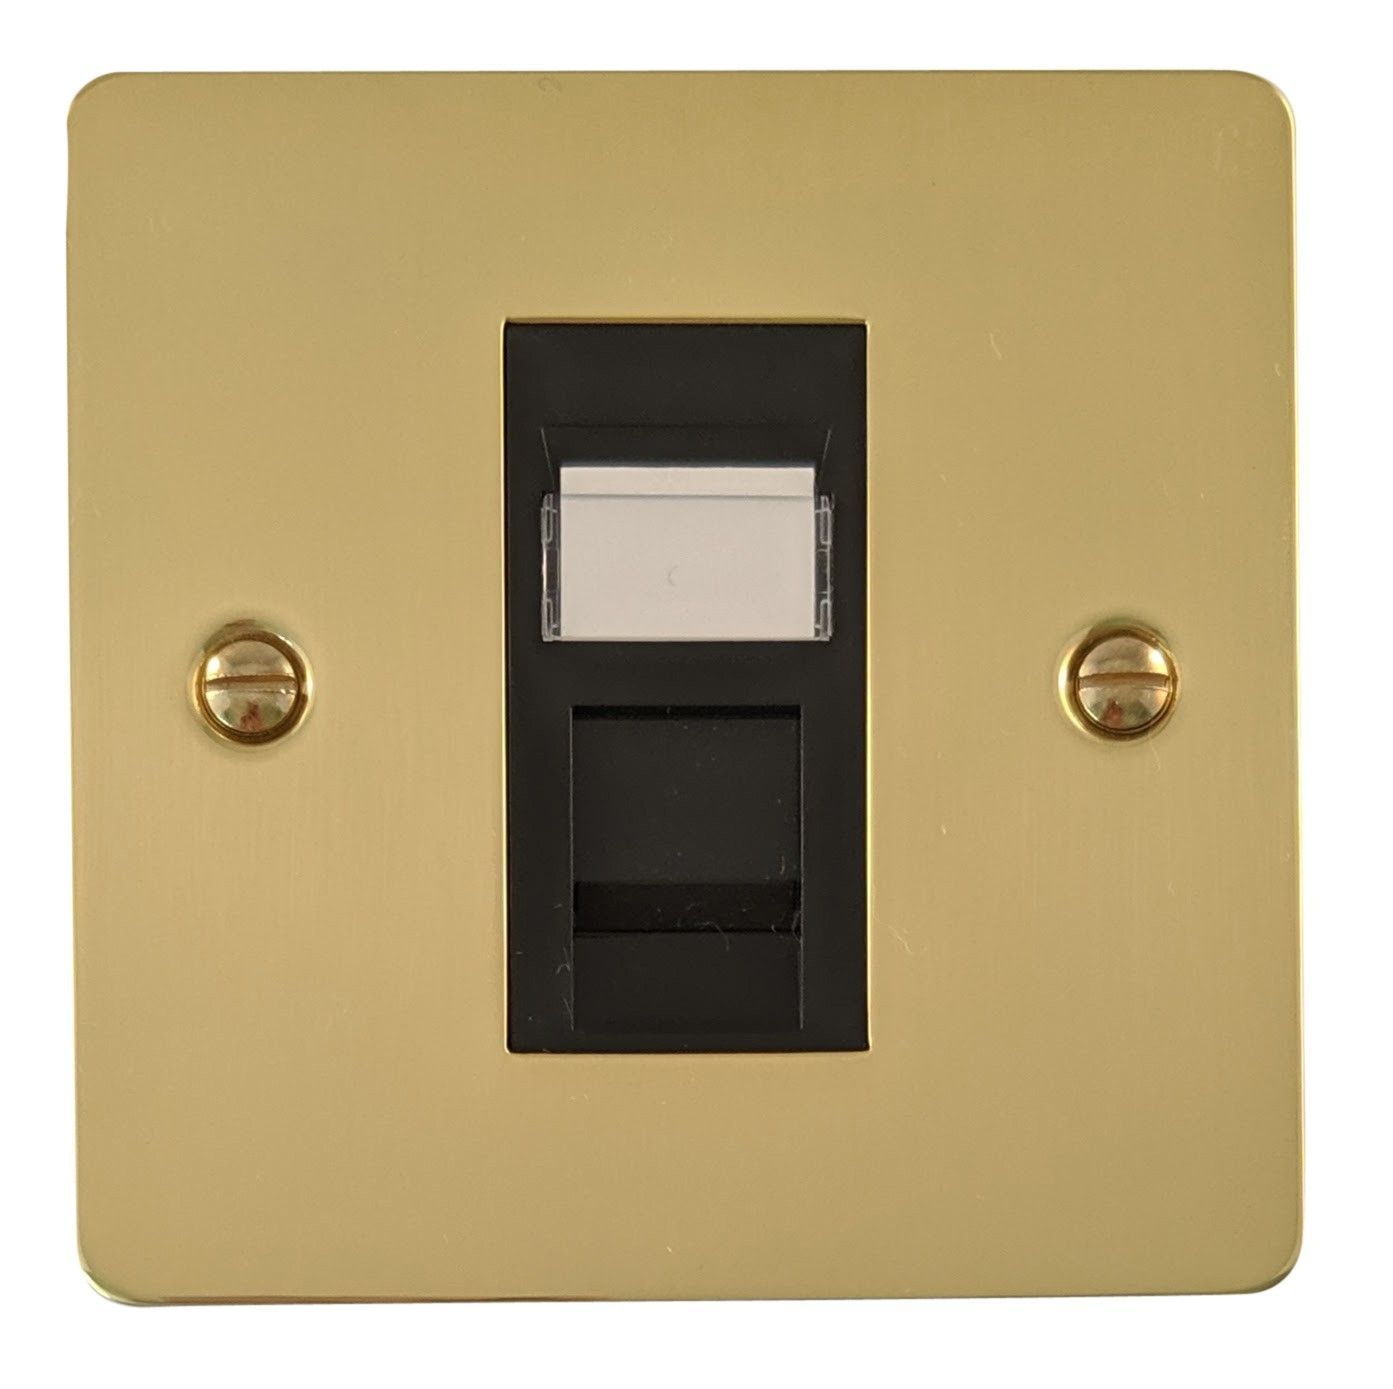 G&H FB61B Flat Plate Polished Brass 1 Gang RJ45 Cat5e Data Socket